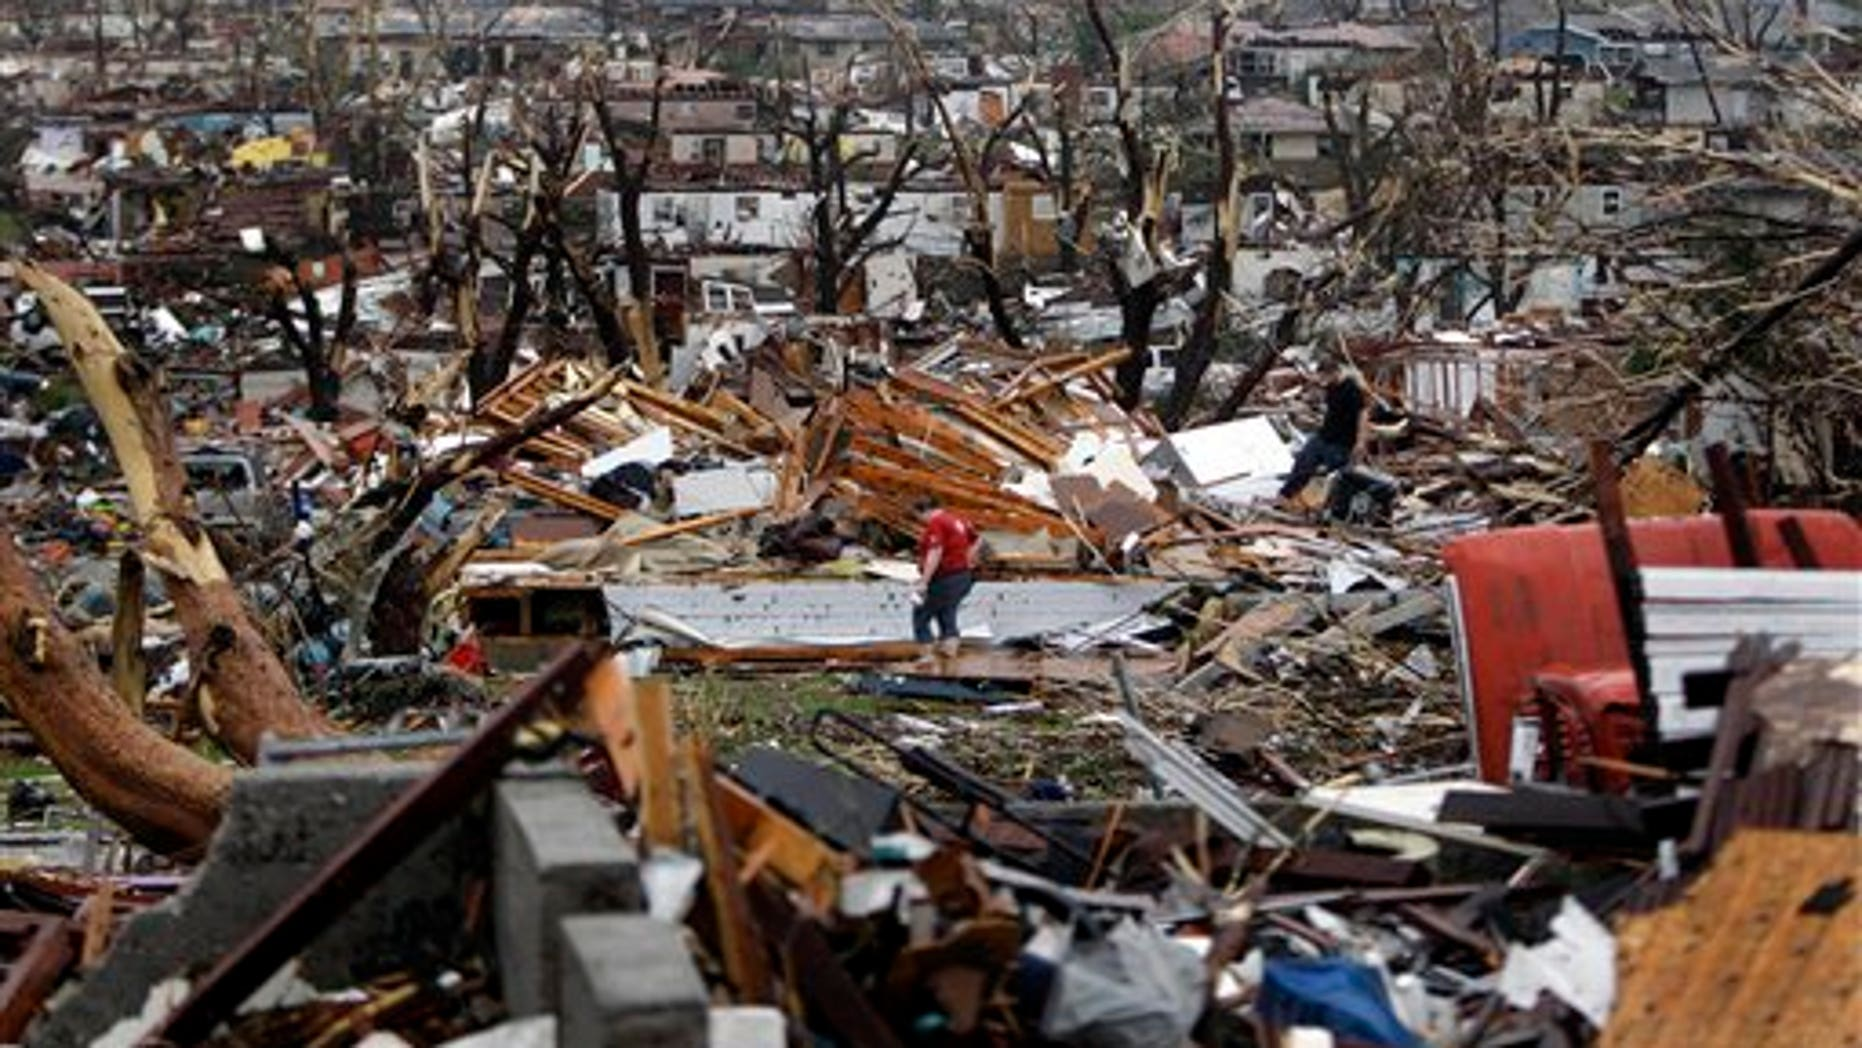 May 23: A large tornado moved through much of the city Sunday, damaging a hospital and hundreds of homes and businesses in Joplin , Mo.